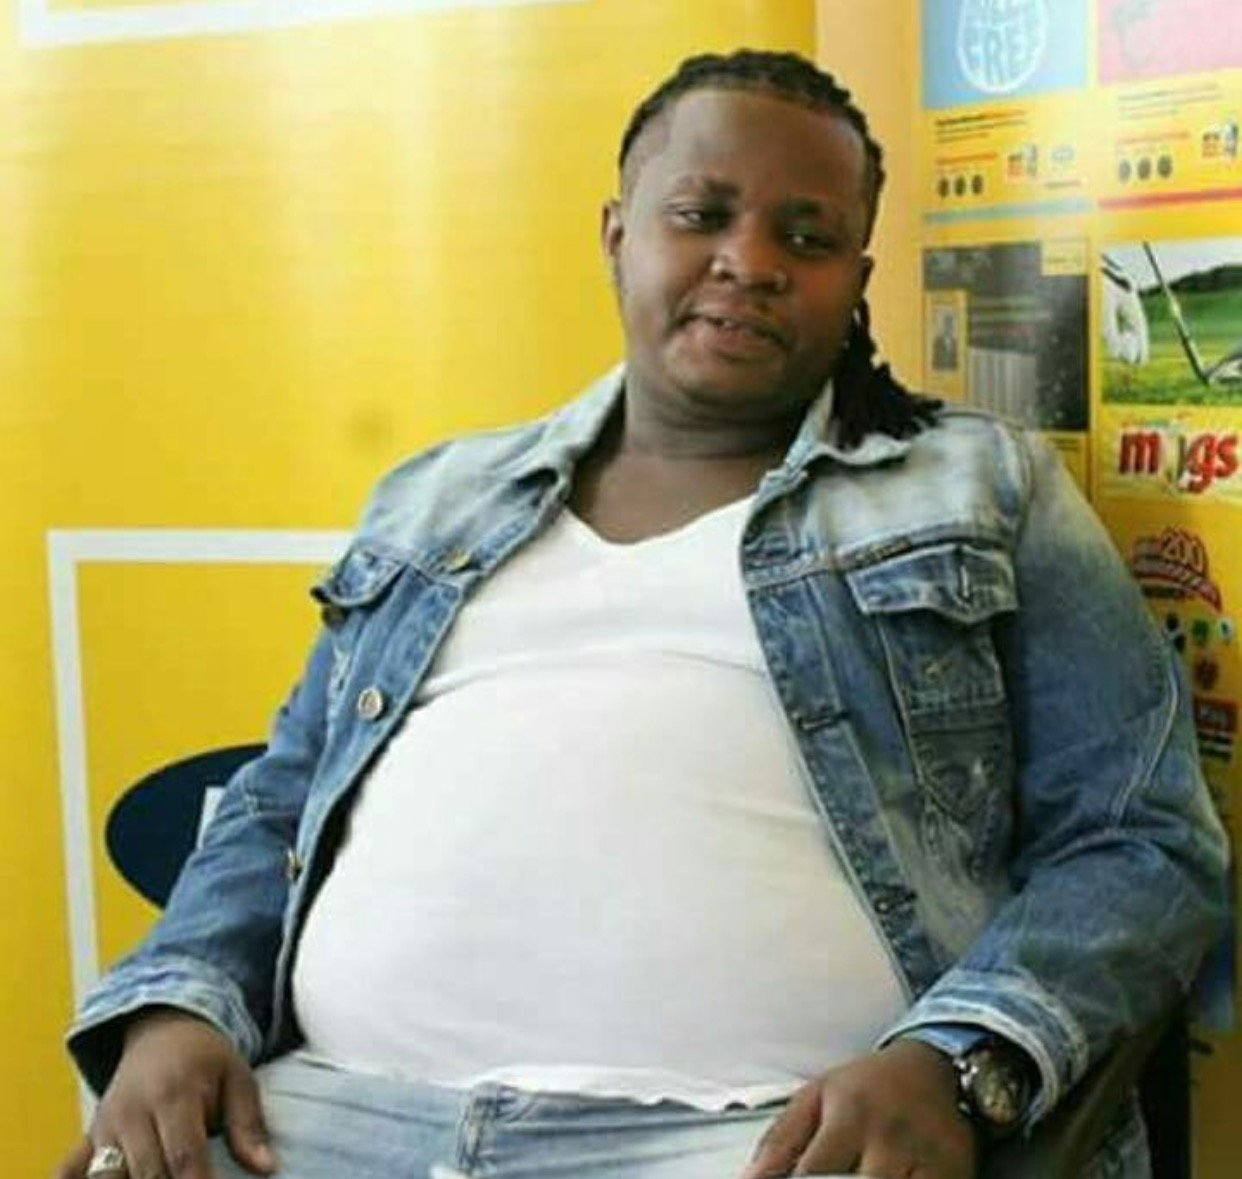 DK Kwenye Beat tells his sad story after years of being fat shamed by fans, this is heartbreaking!